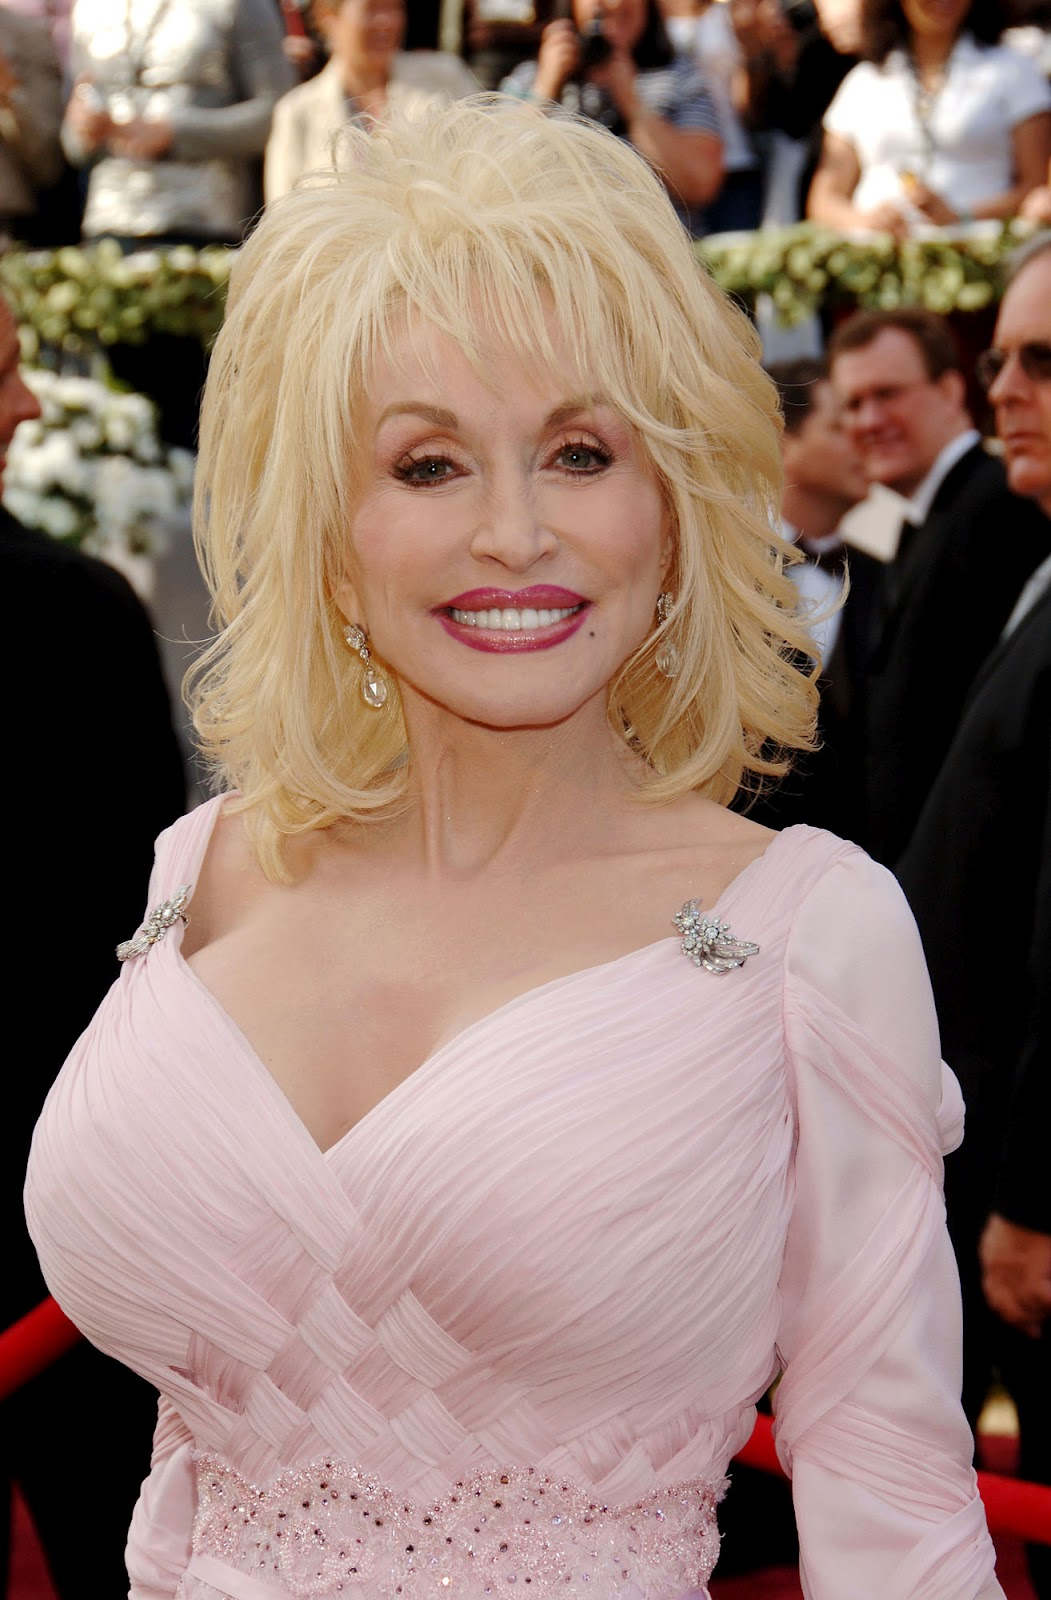 photos of dolly parton